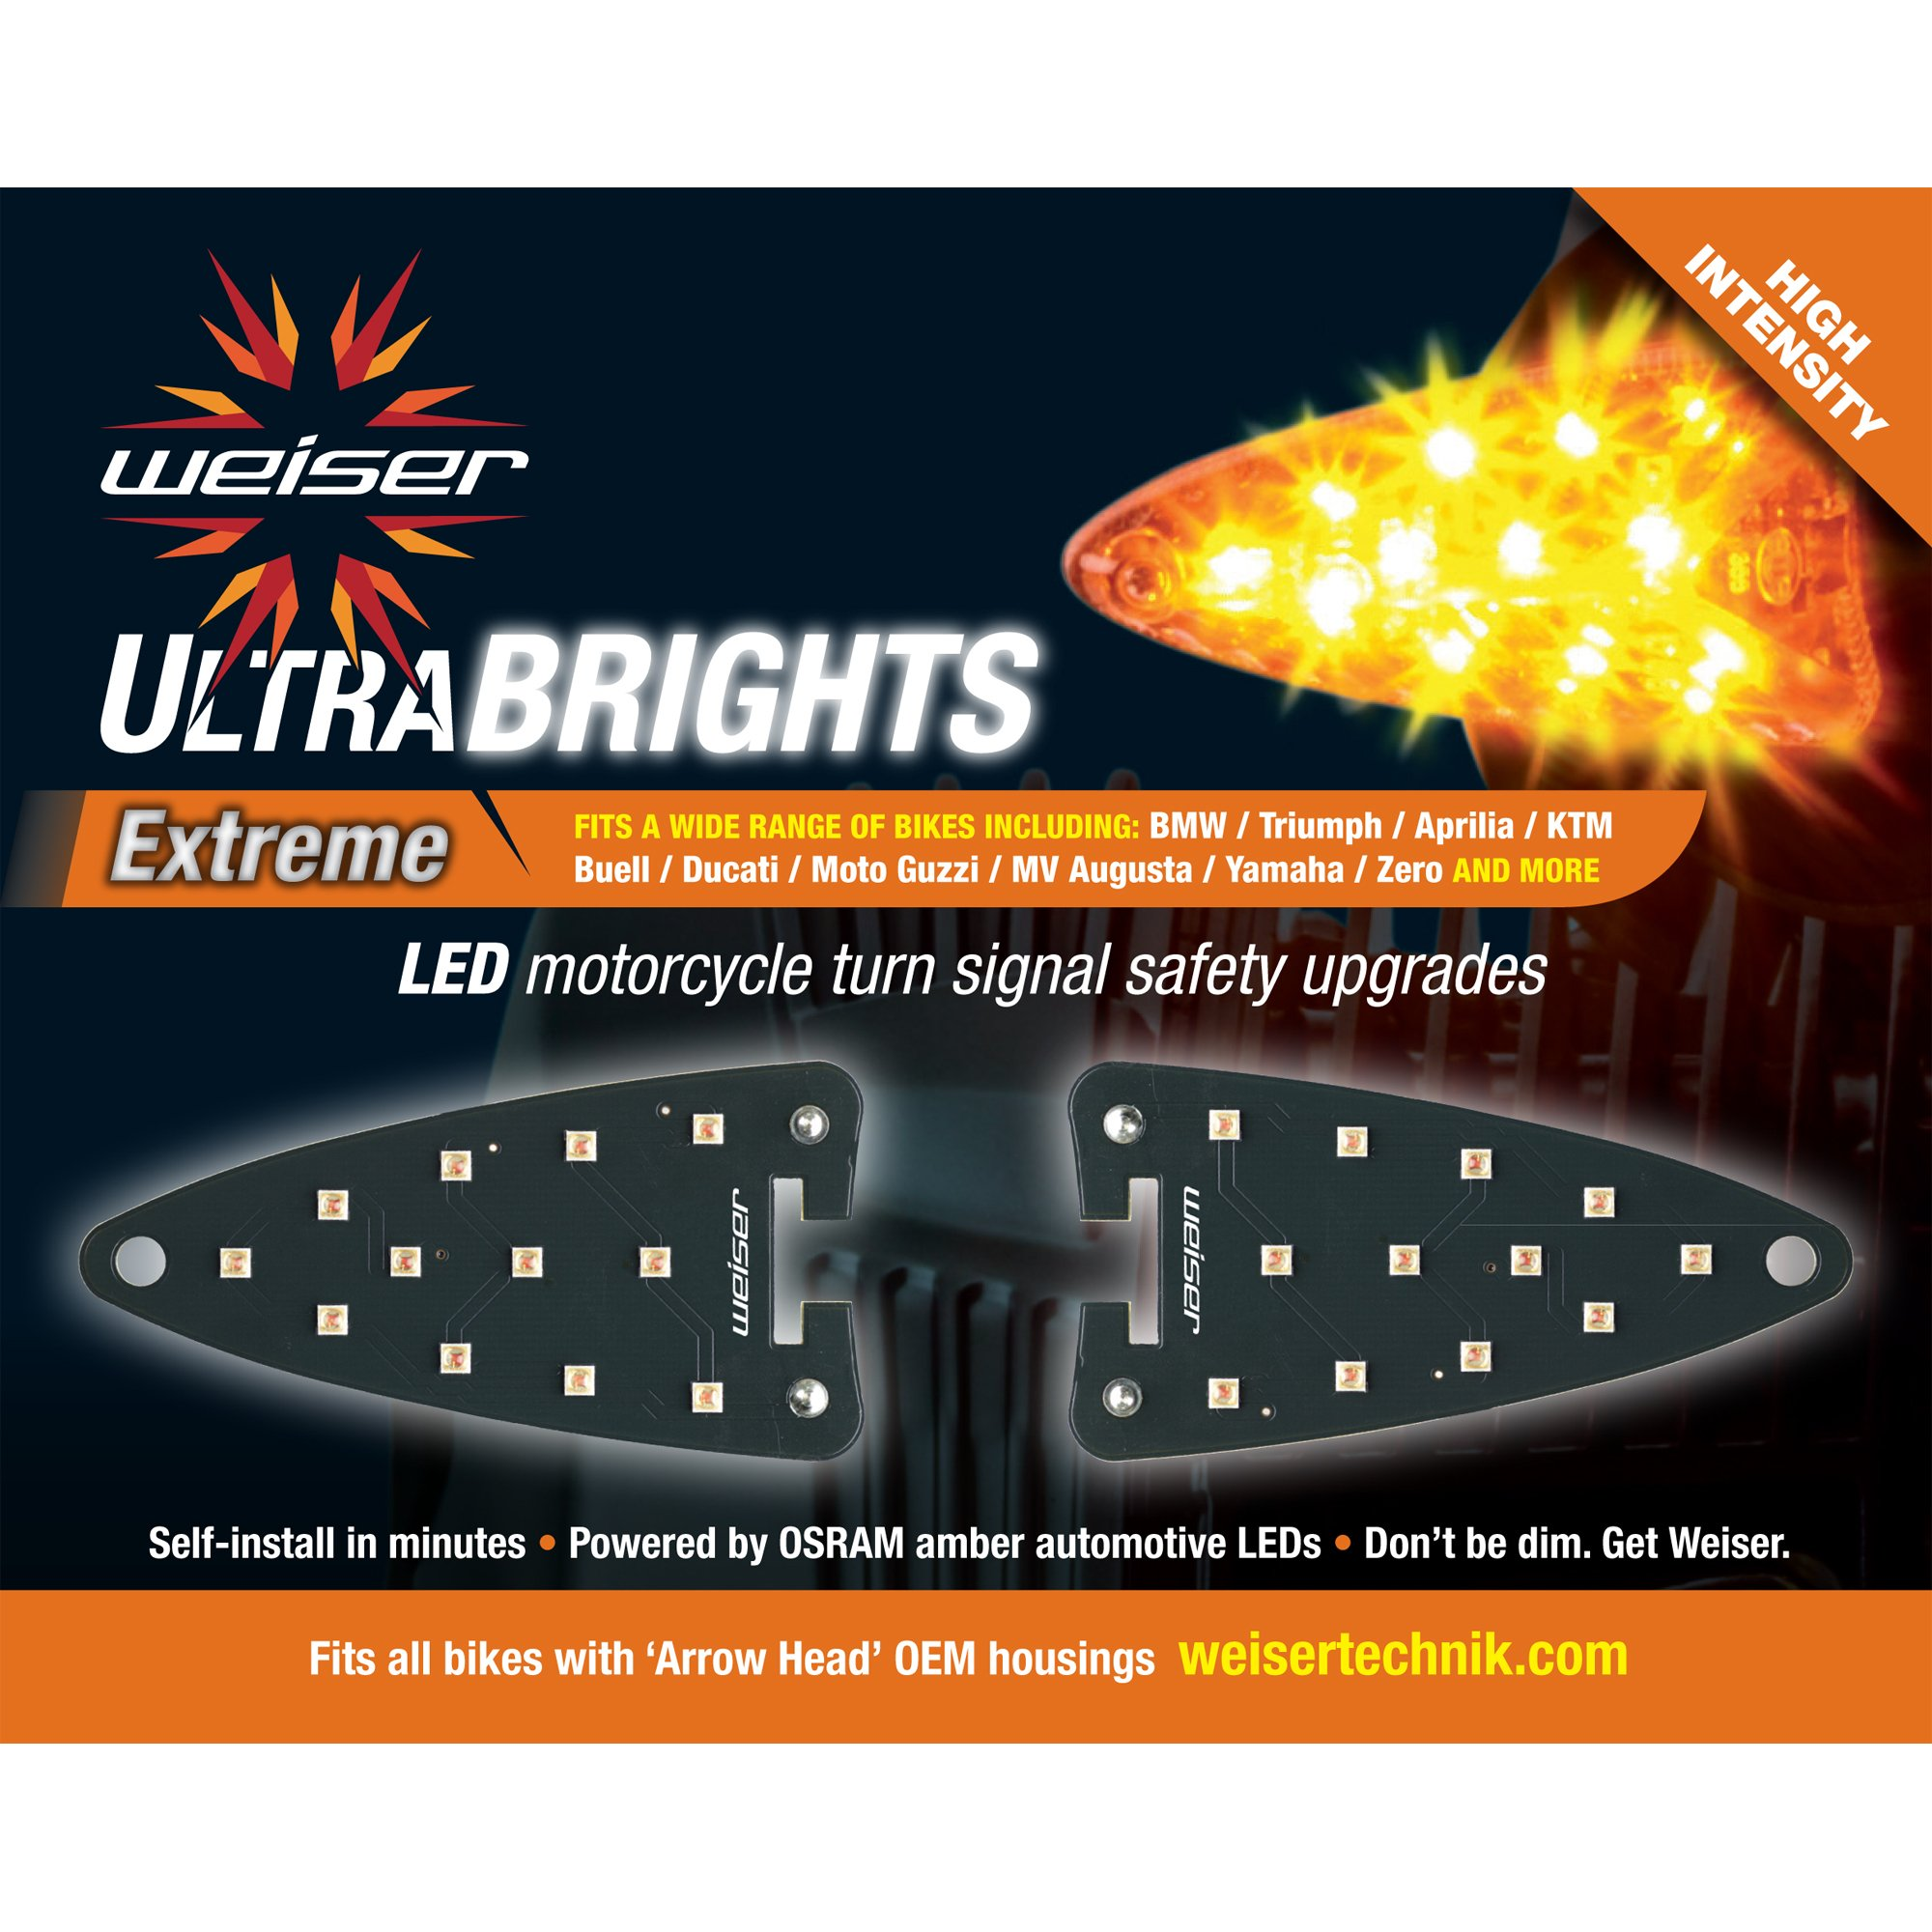 Ultrabrights Extreme LED Turn Signal Upgrades for Aprilia, Triumph, KTM, Buell, Ducati, MV Augusta, Moto Guzzi, Triumph, Yamaha and Zero Motorcycles